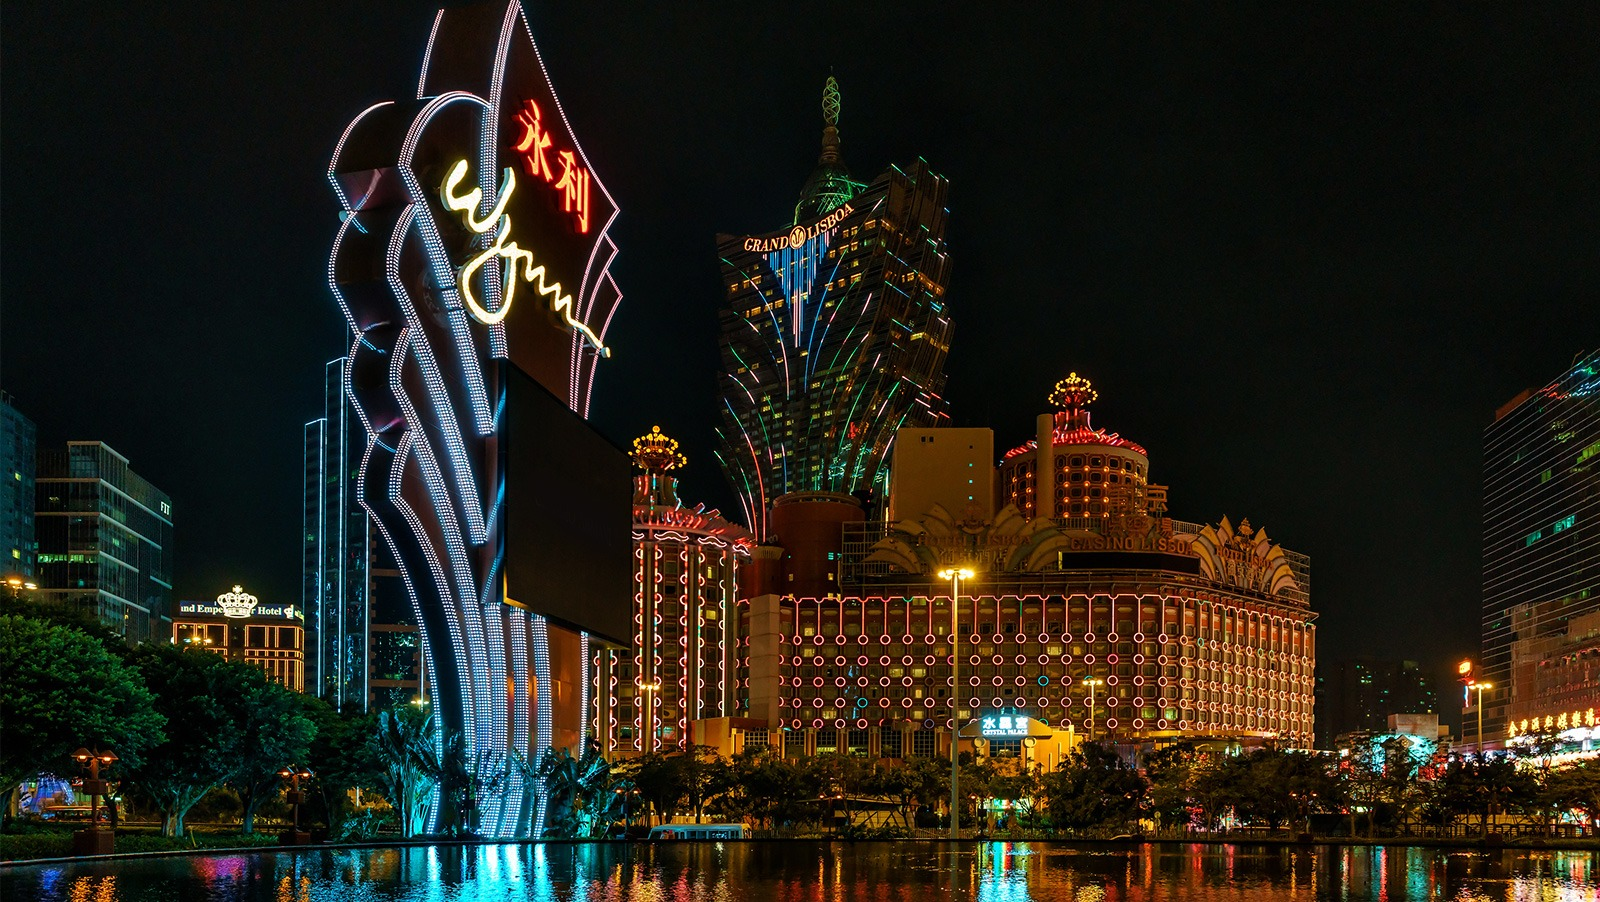 Macau gaming revenue predicted to continue drop through 2019 end